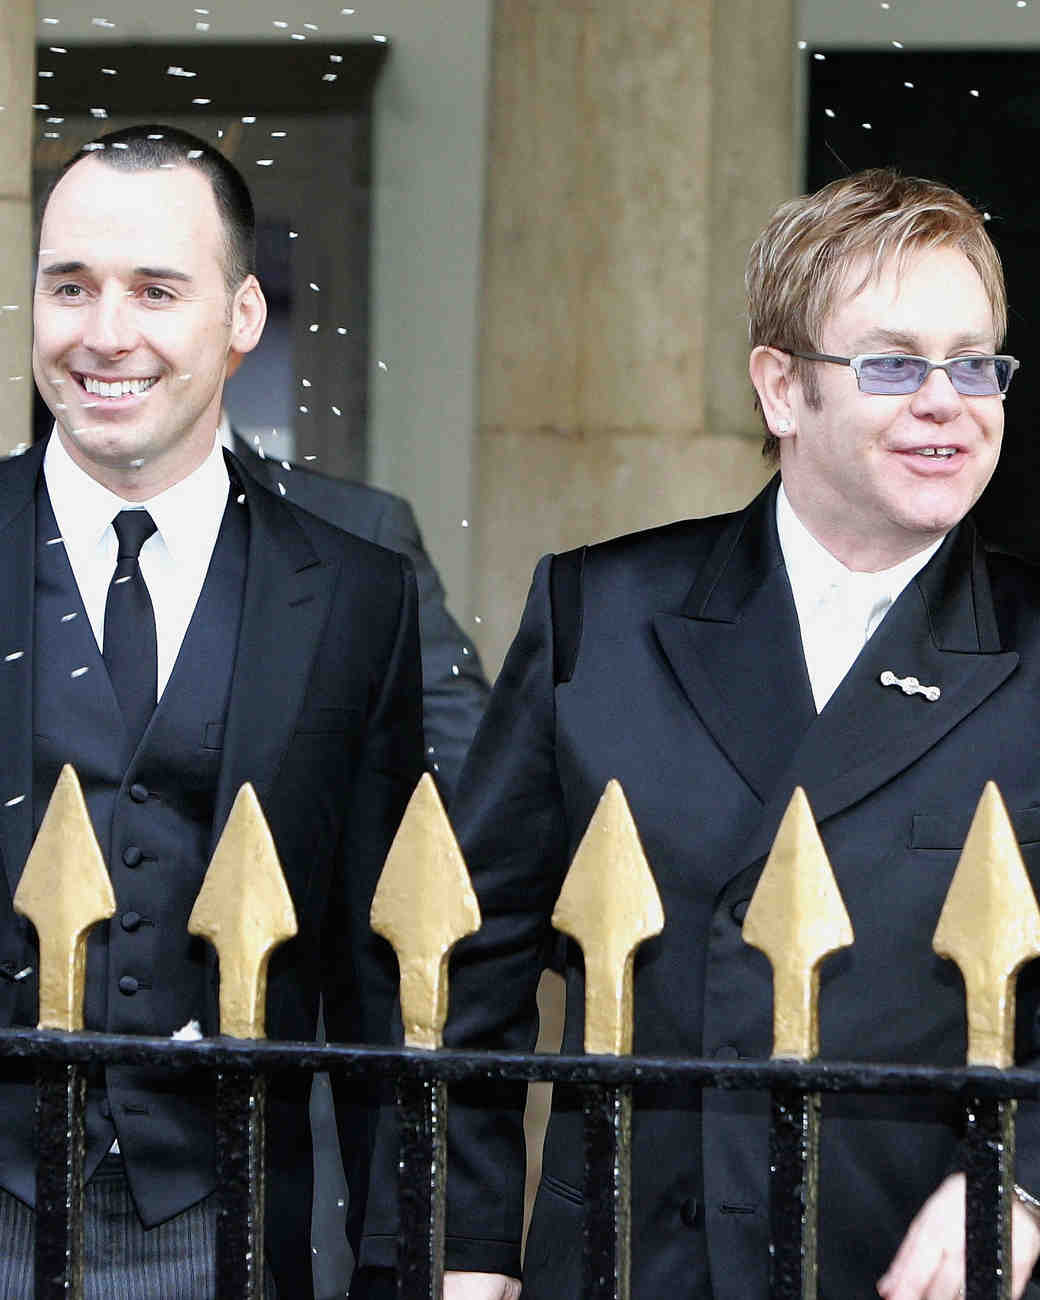 iconic-rock-n-roll-wedding-photos-elton-john-david-furnish-0616.jpg